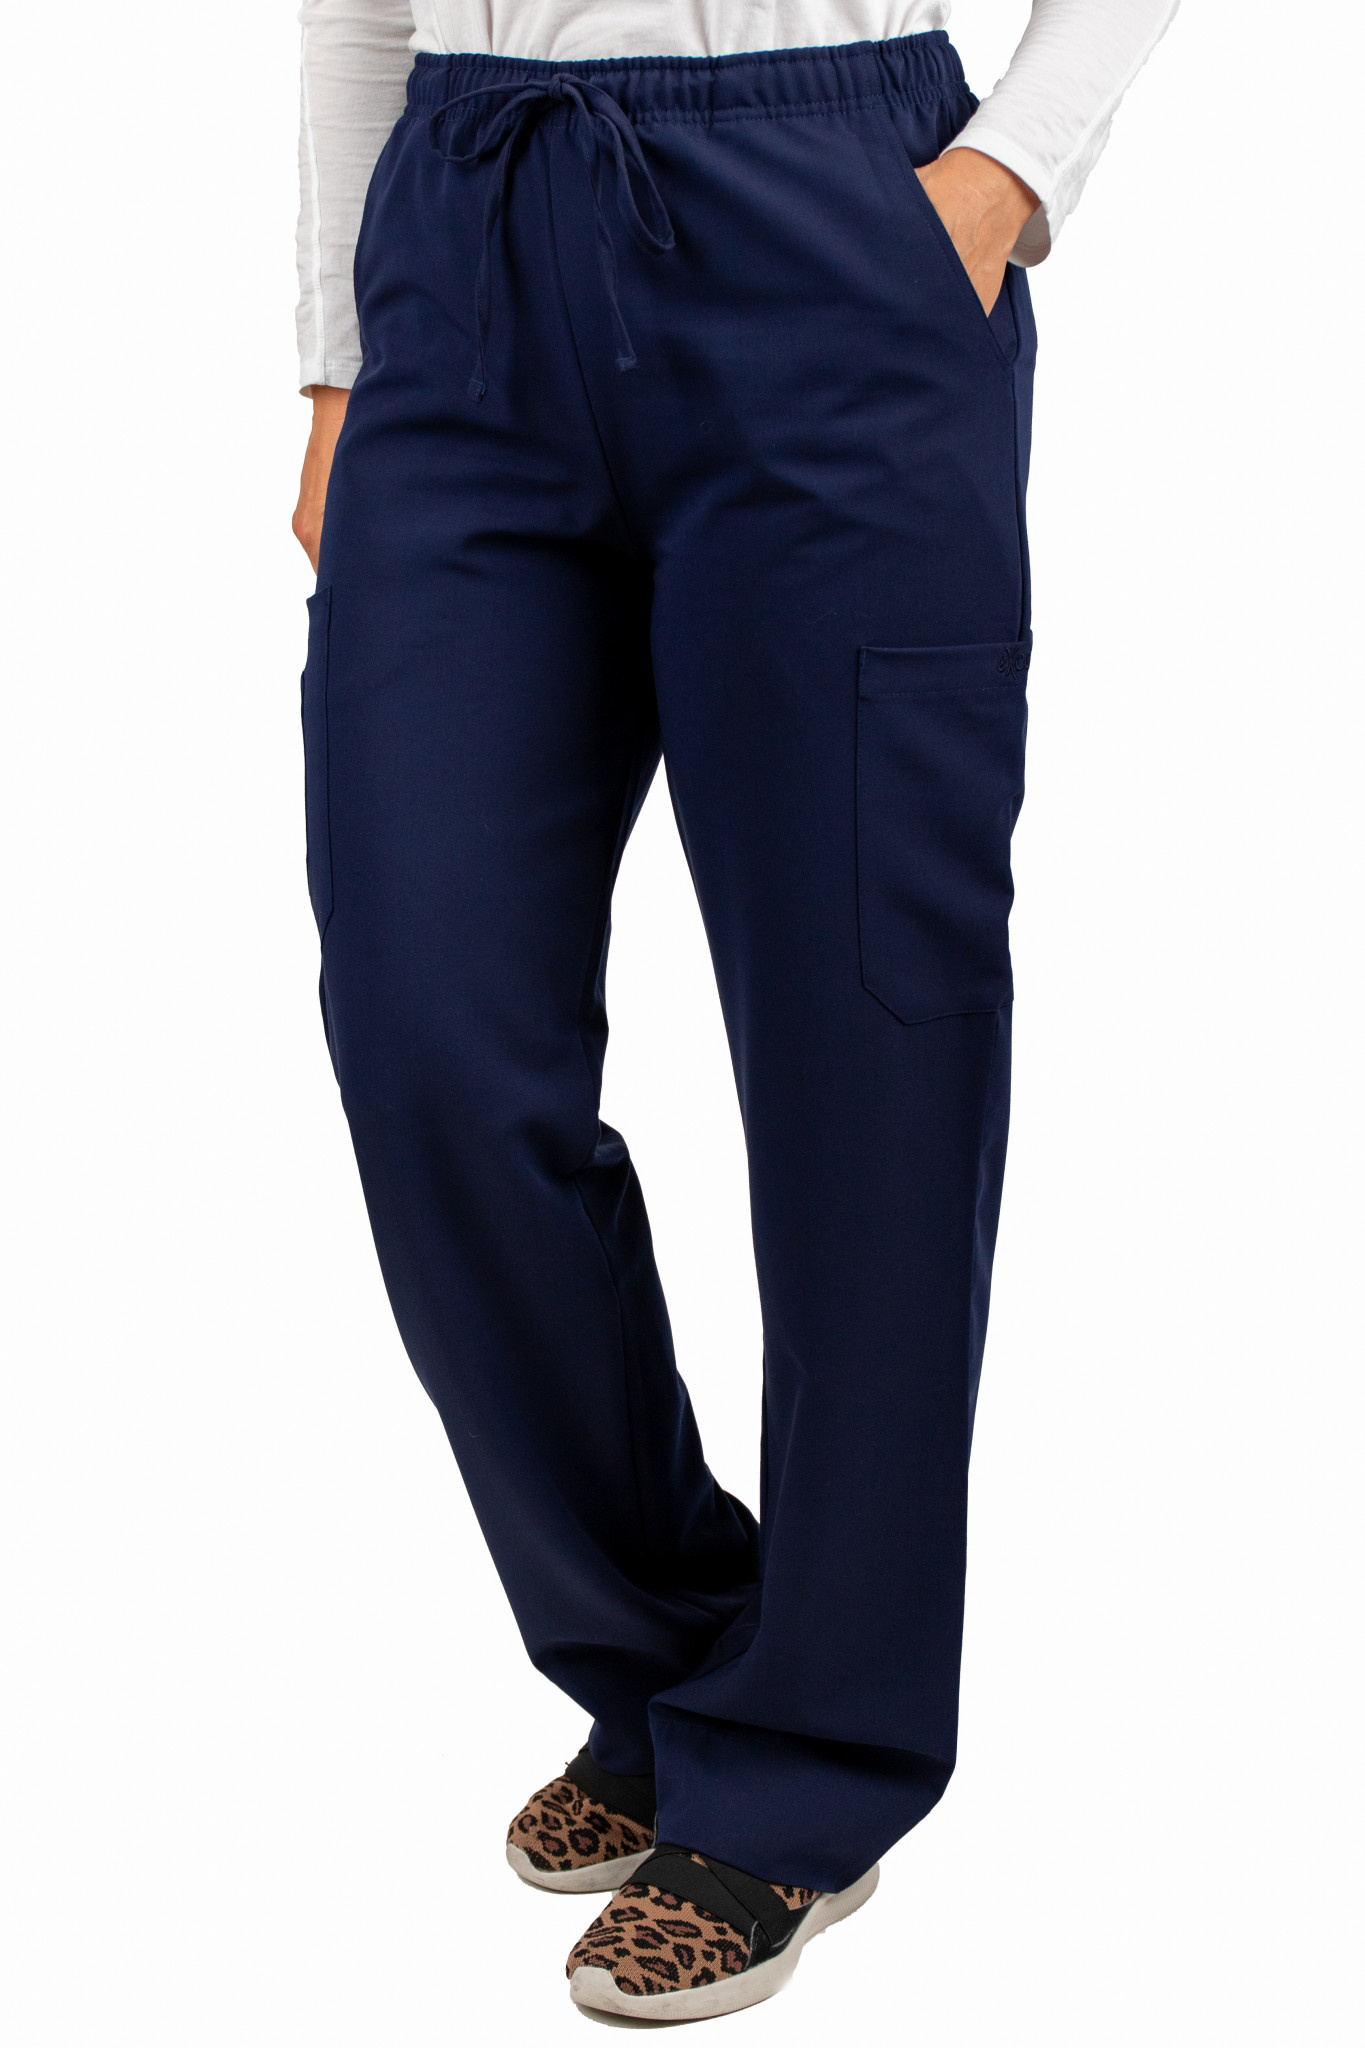 EXCEL Navy Blue Unisex Pants 727